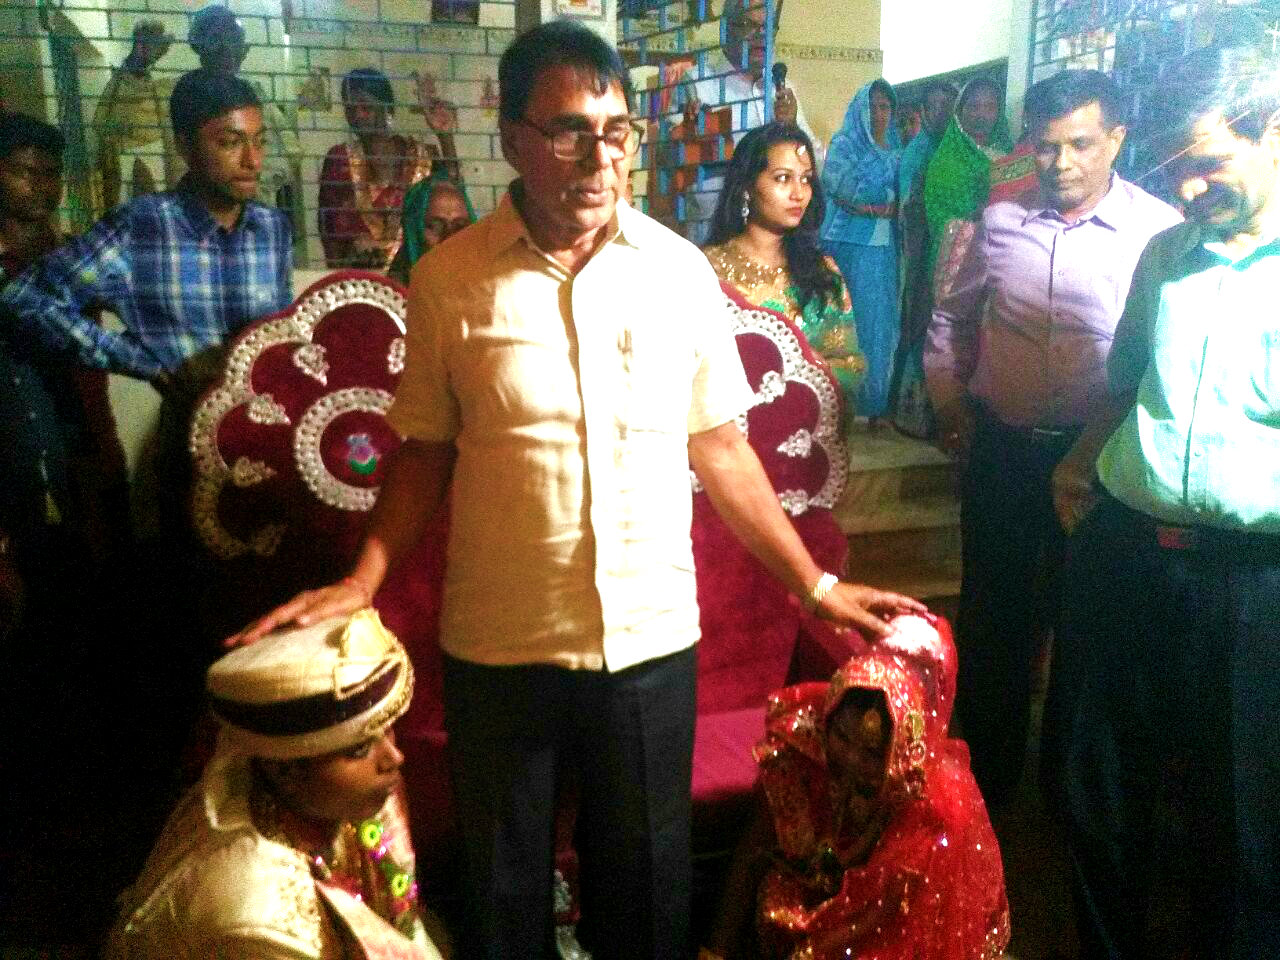 Dr.Madhepuri giving blessings to a newly wedding couple Ayushmati Kiran Kumari Sada and Ayushman Sachin Kumar Sada in the Campus of Rukma Devi Thakurbari Sigeon, Madhepura.